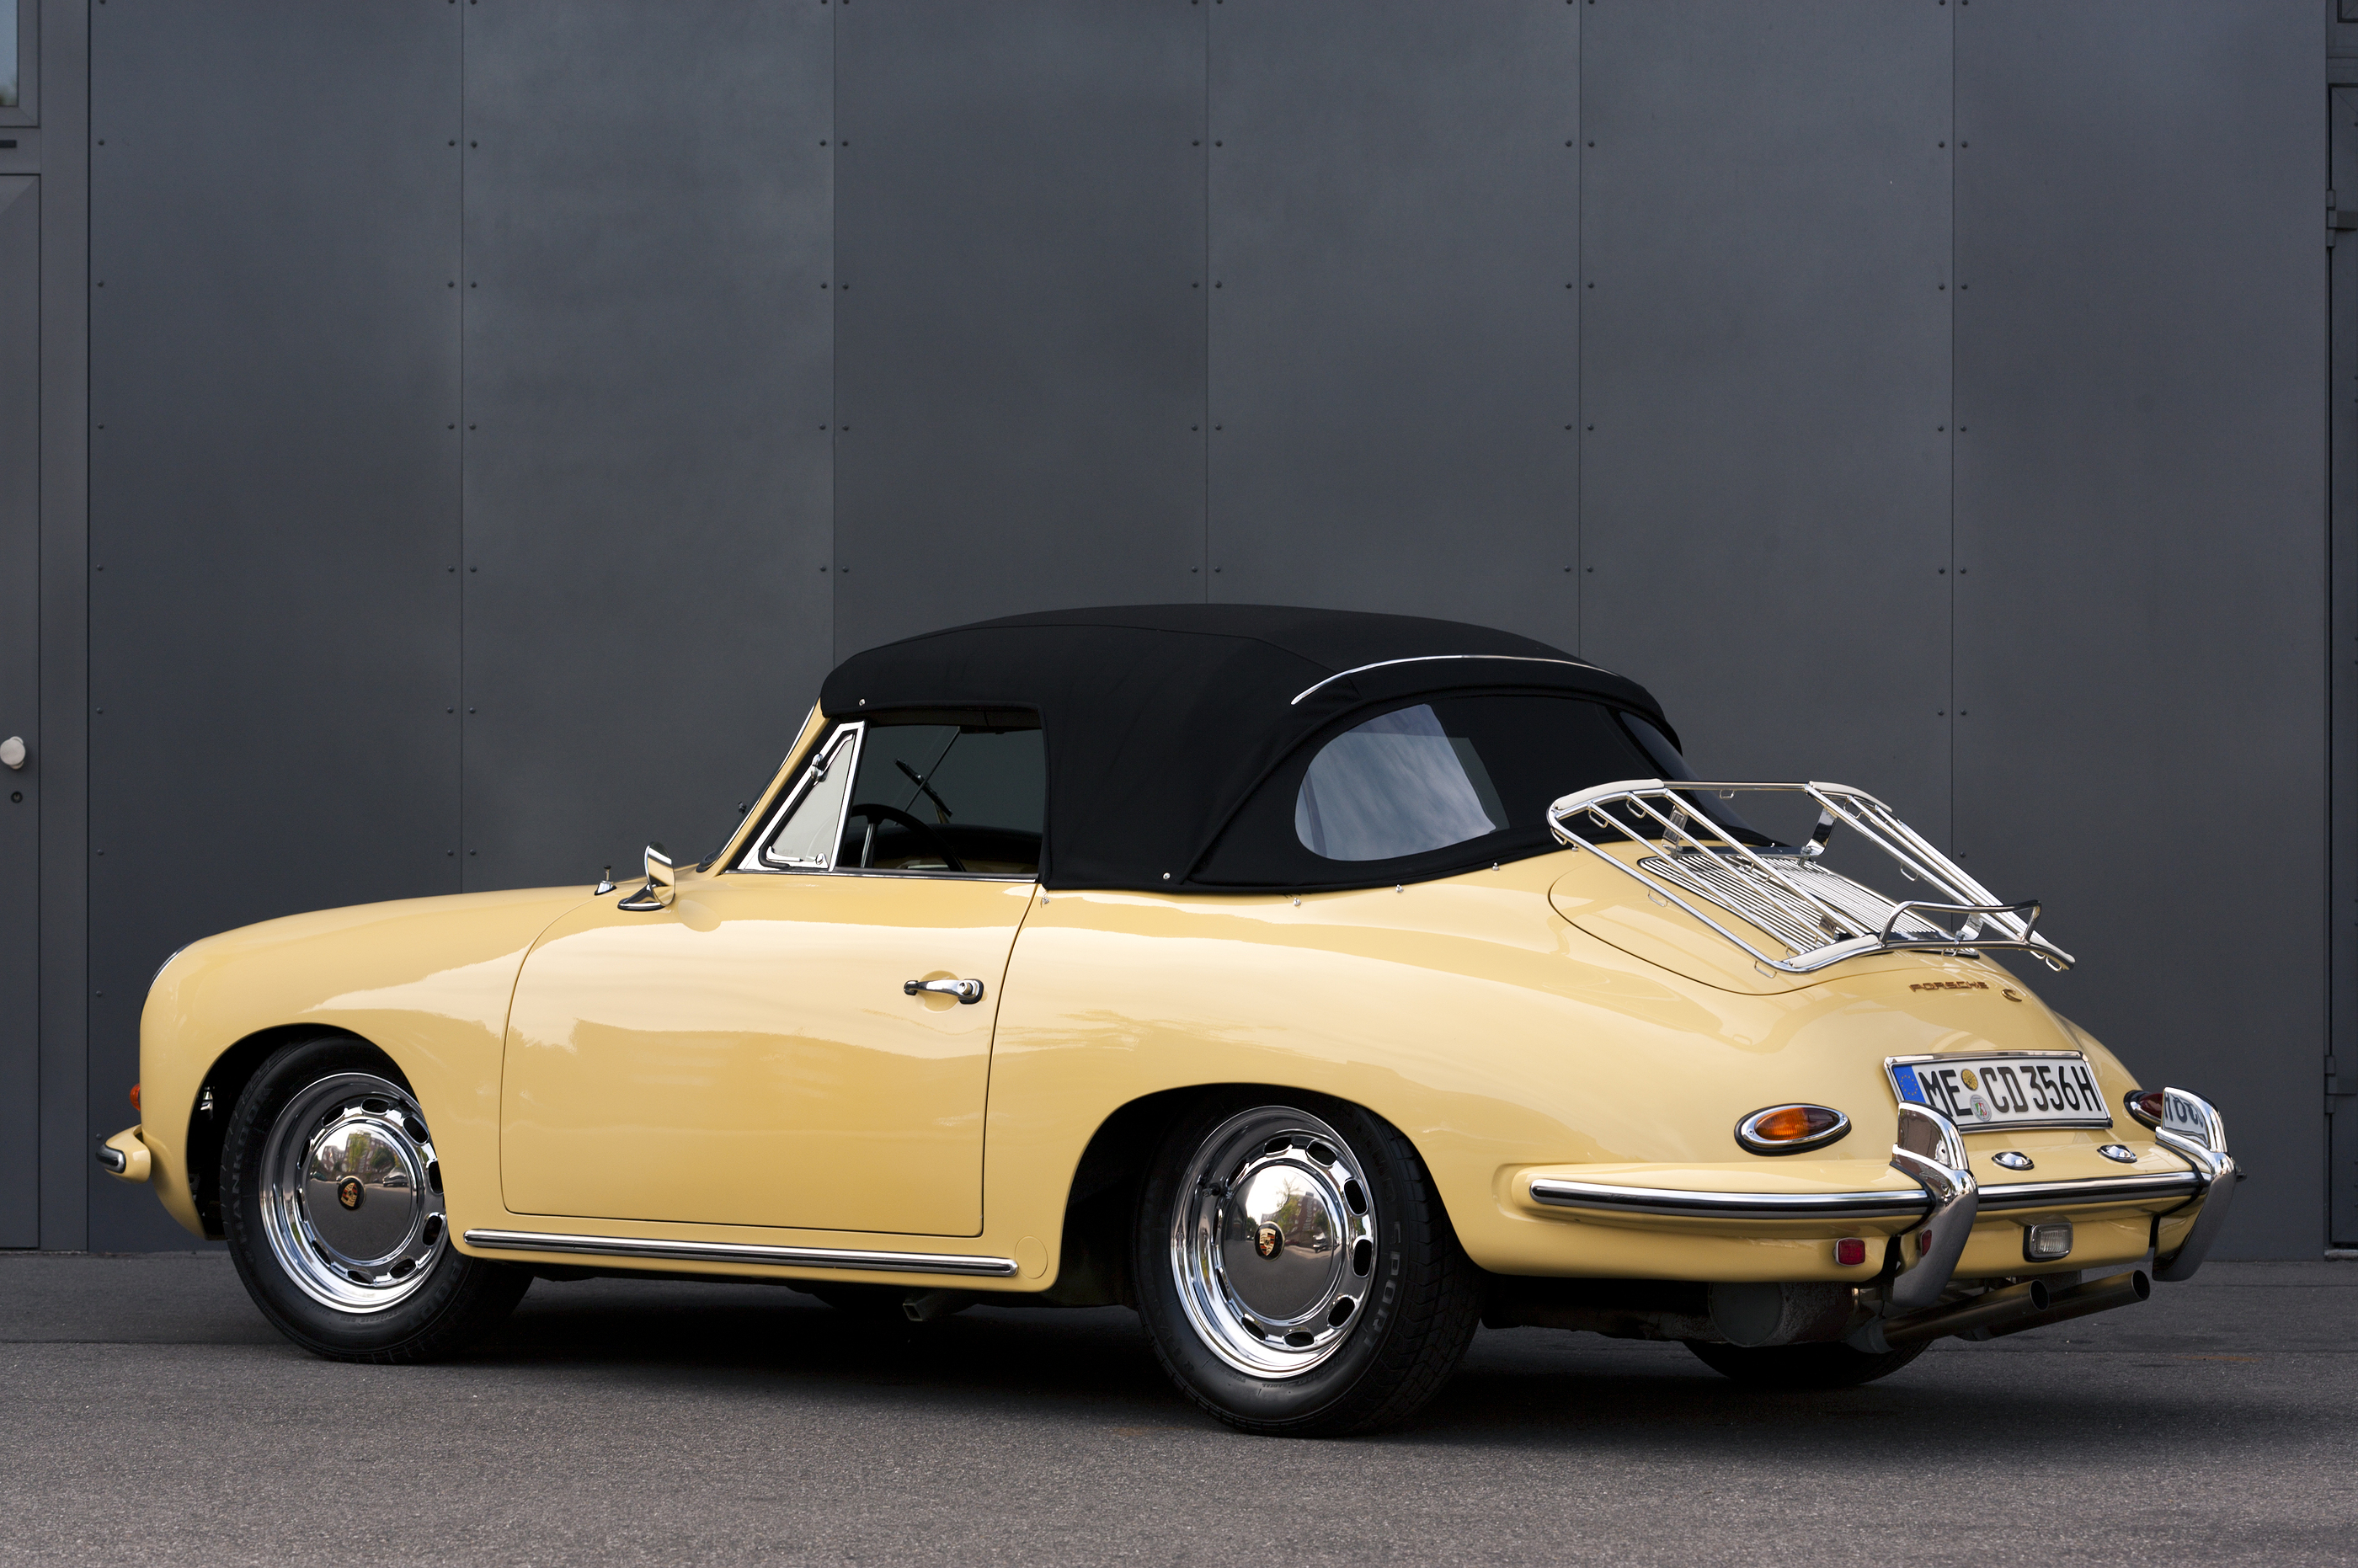 DUSSELDORF, GERMANY - JUNE 17, 2009: A PERFECTLY RESTORED LIGHT YELLOW PORSCHE 356 C CONVERTIBLE IN FRONT OF A GREY STEEL WALL. BY FOODBYTES